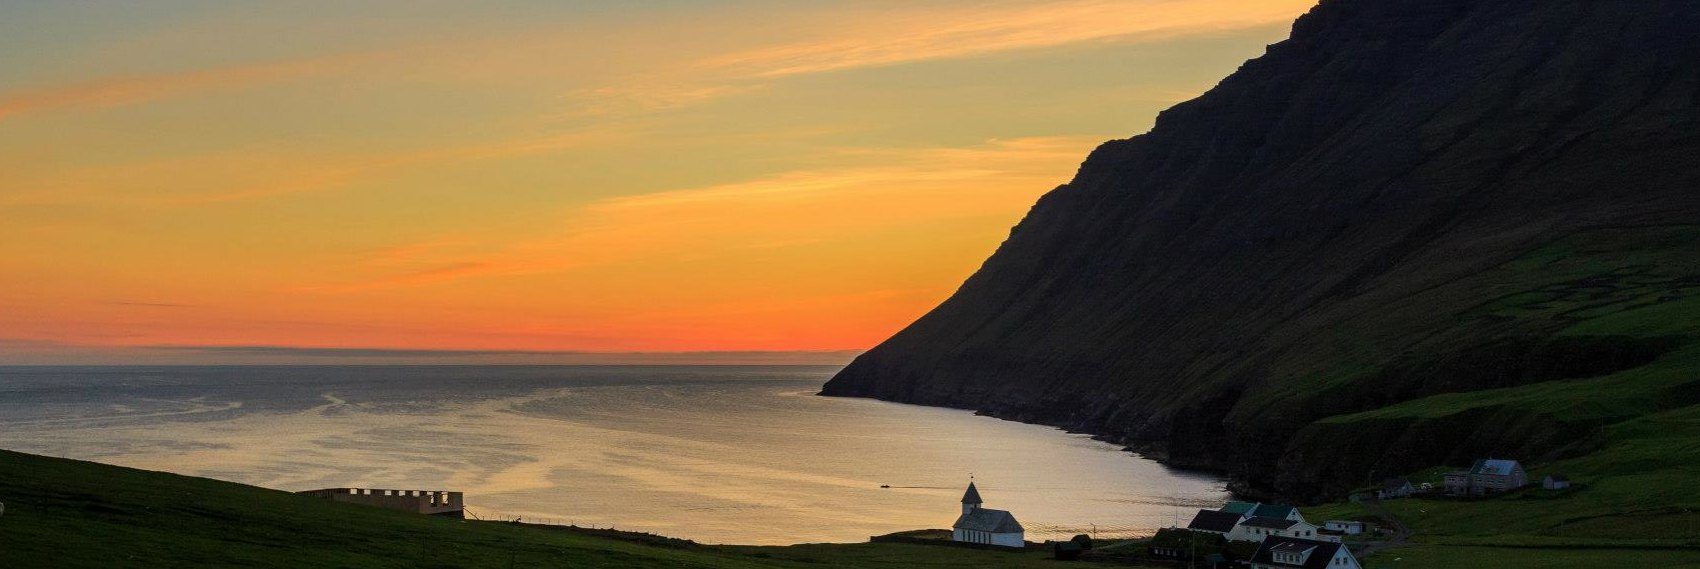 sunset-faroeislands-guesthouse-banner